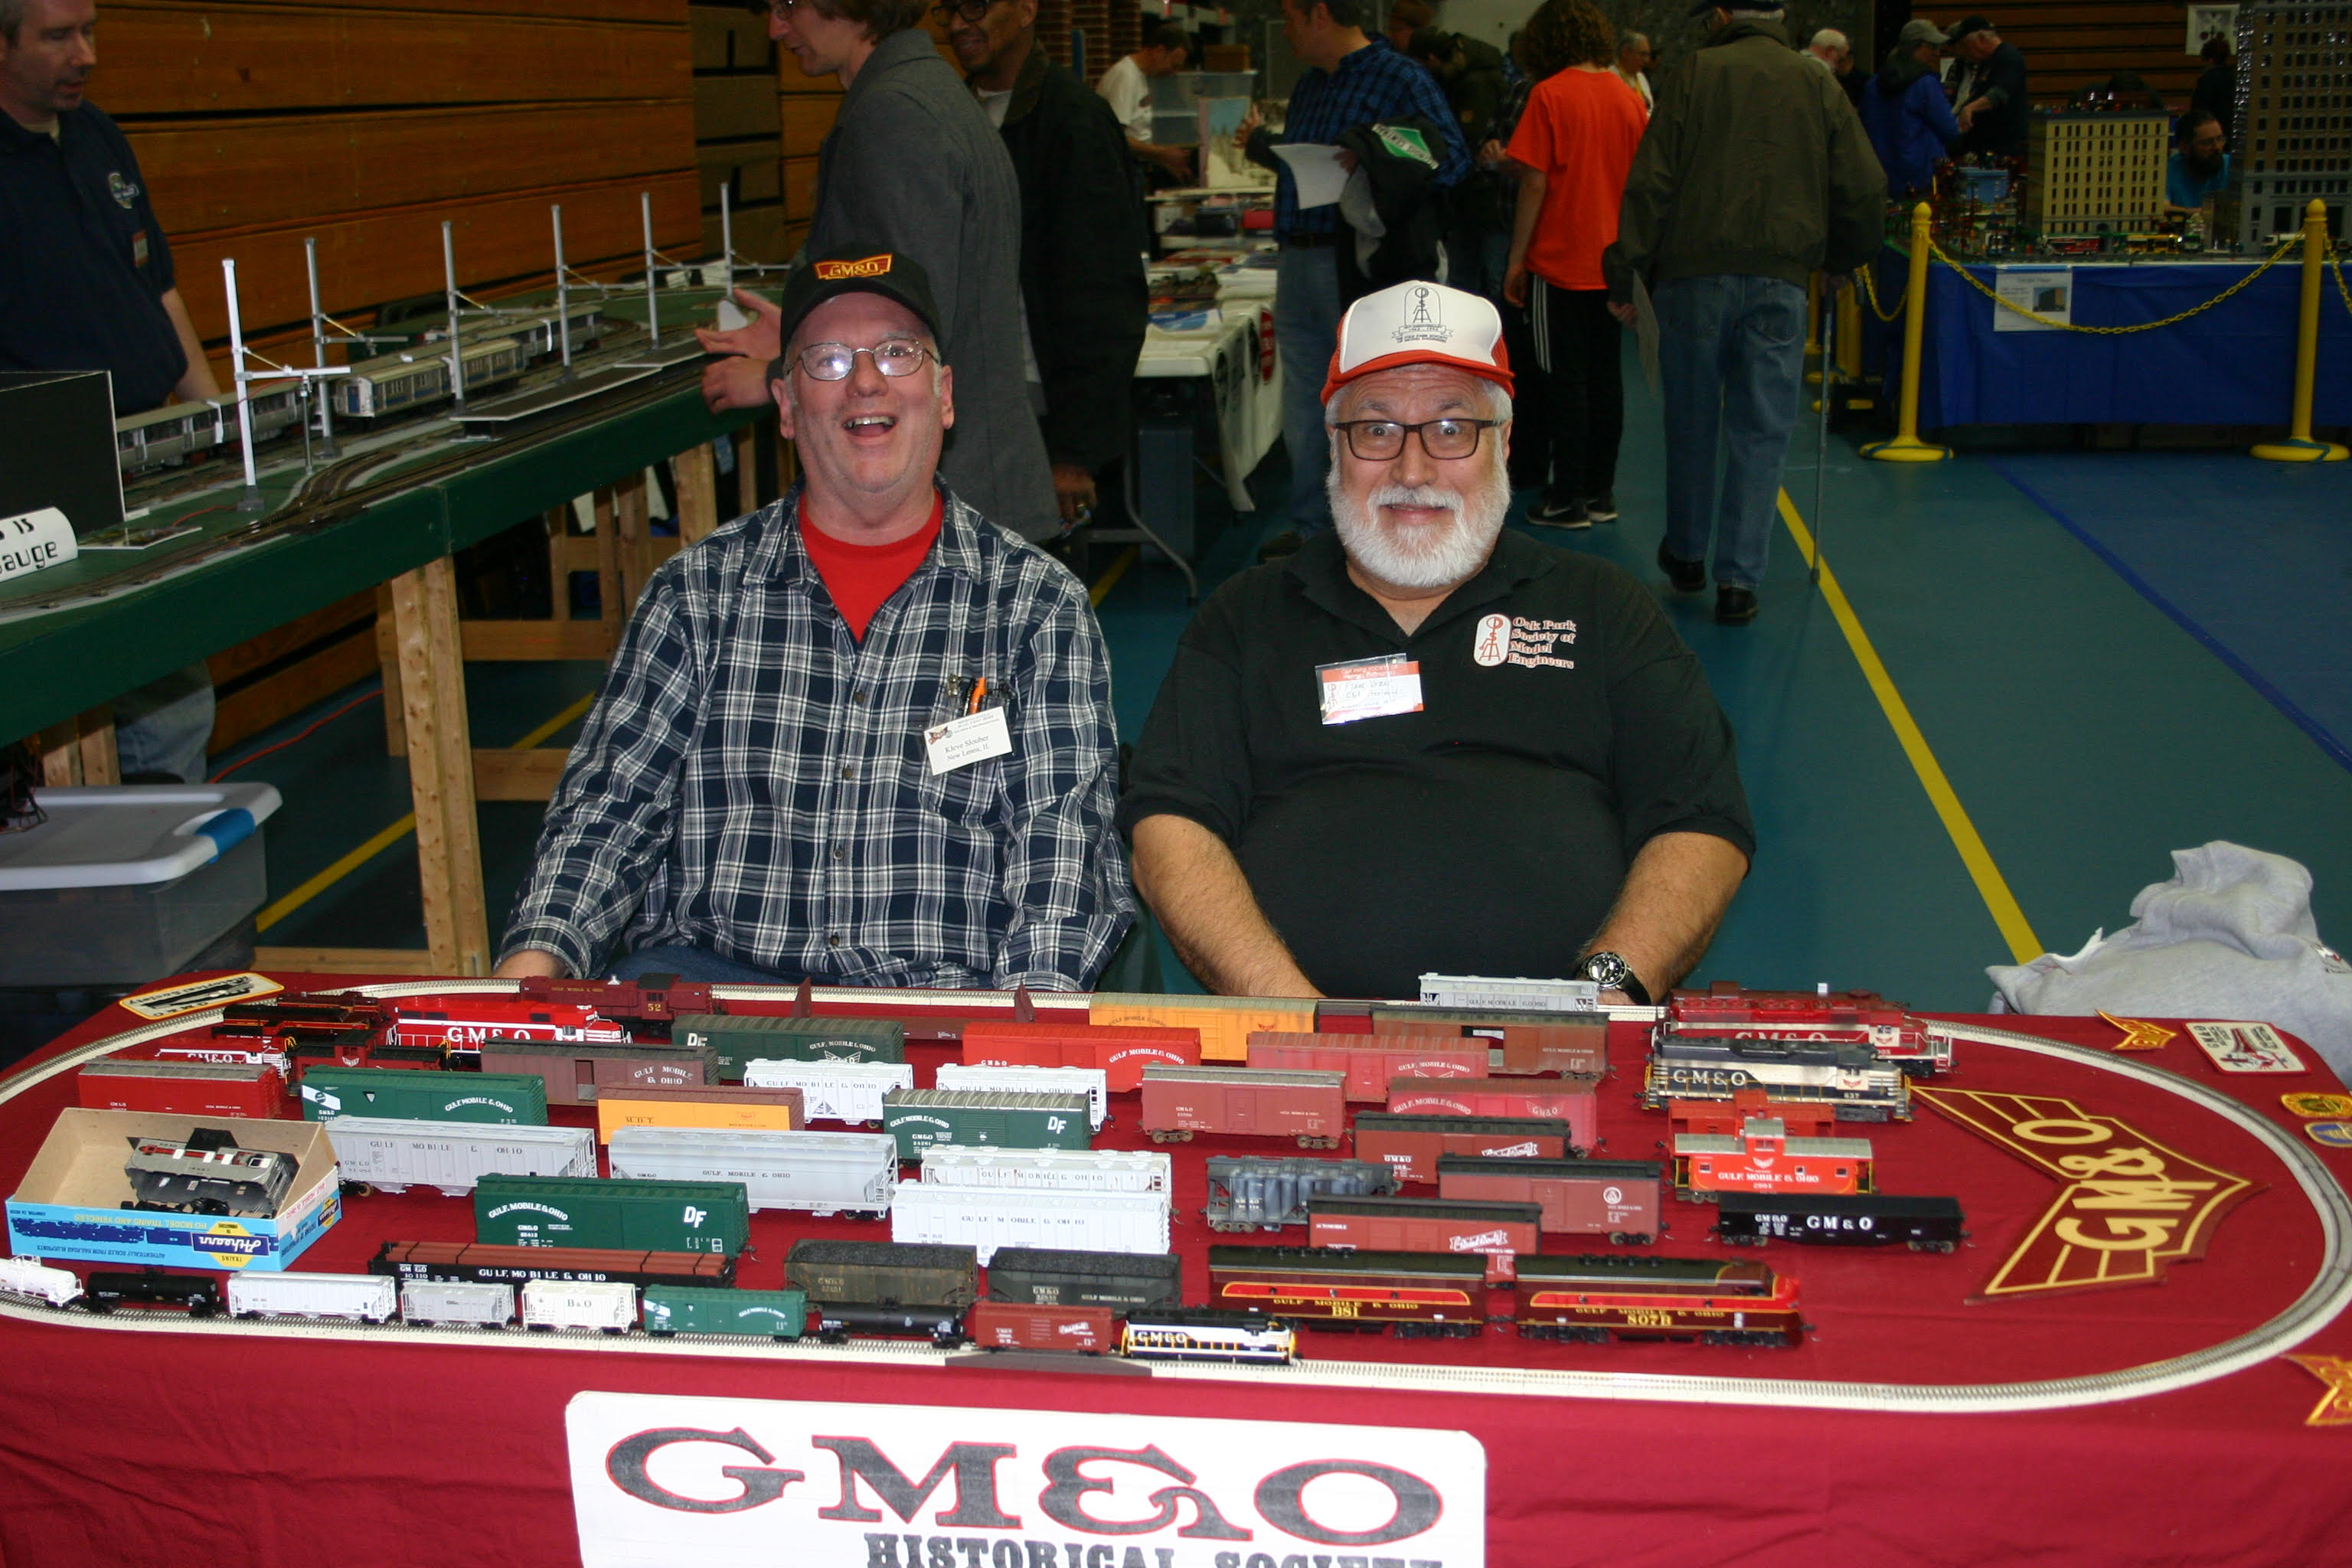 OPSME Supports RR Historical Societies